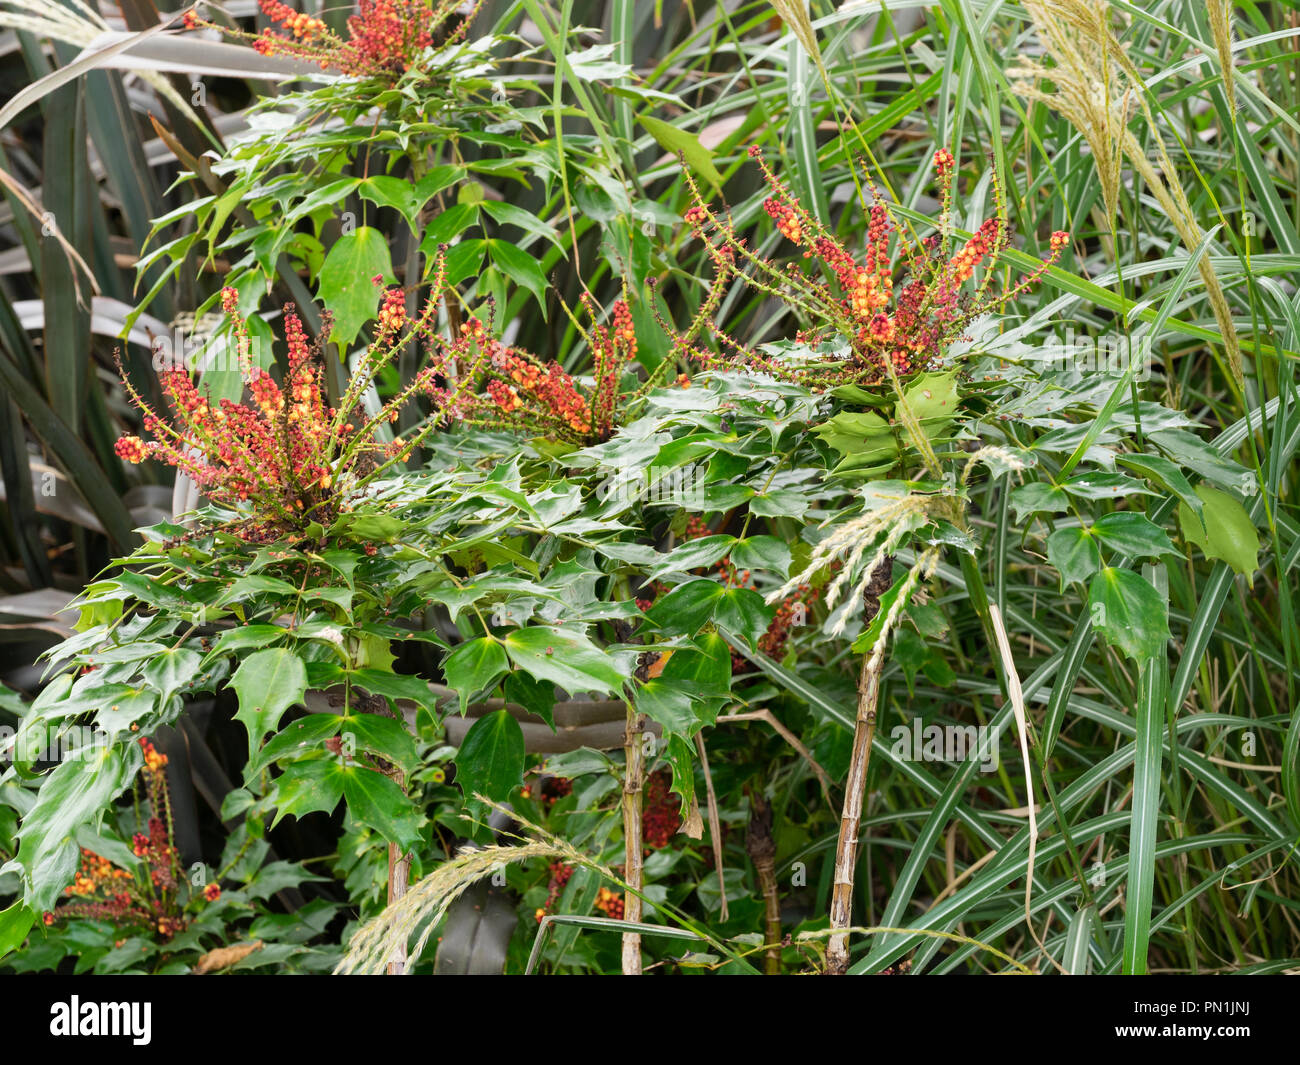 Evergreen shrub winter flowering yellow flowers stock photos red buddedm yellow flowered terminal racemes of the hardy evergreen autumn to winter flowering shrub mightylinksfo